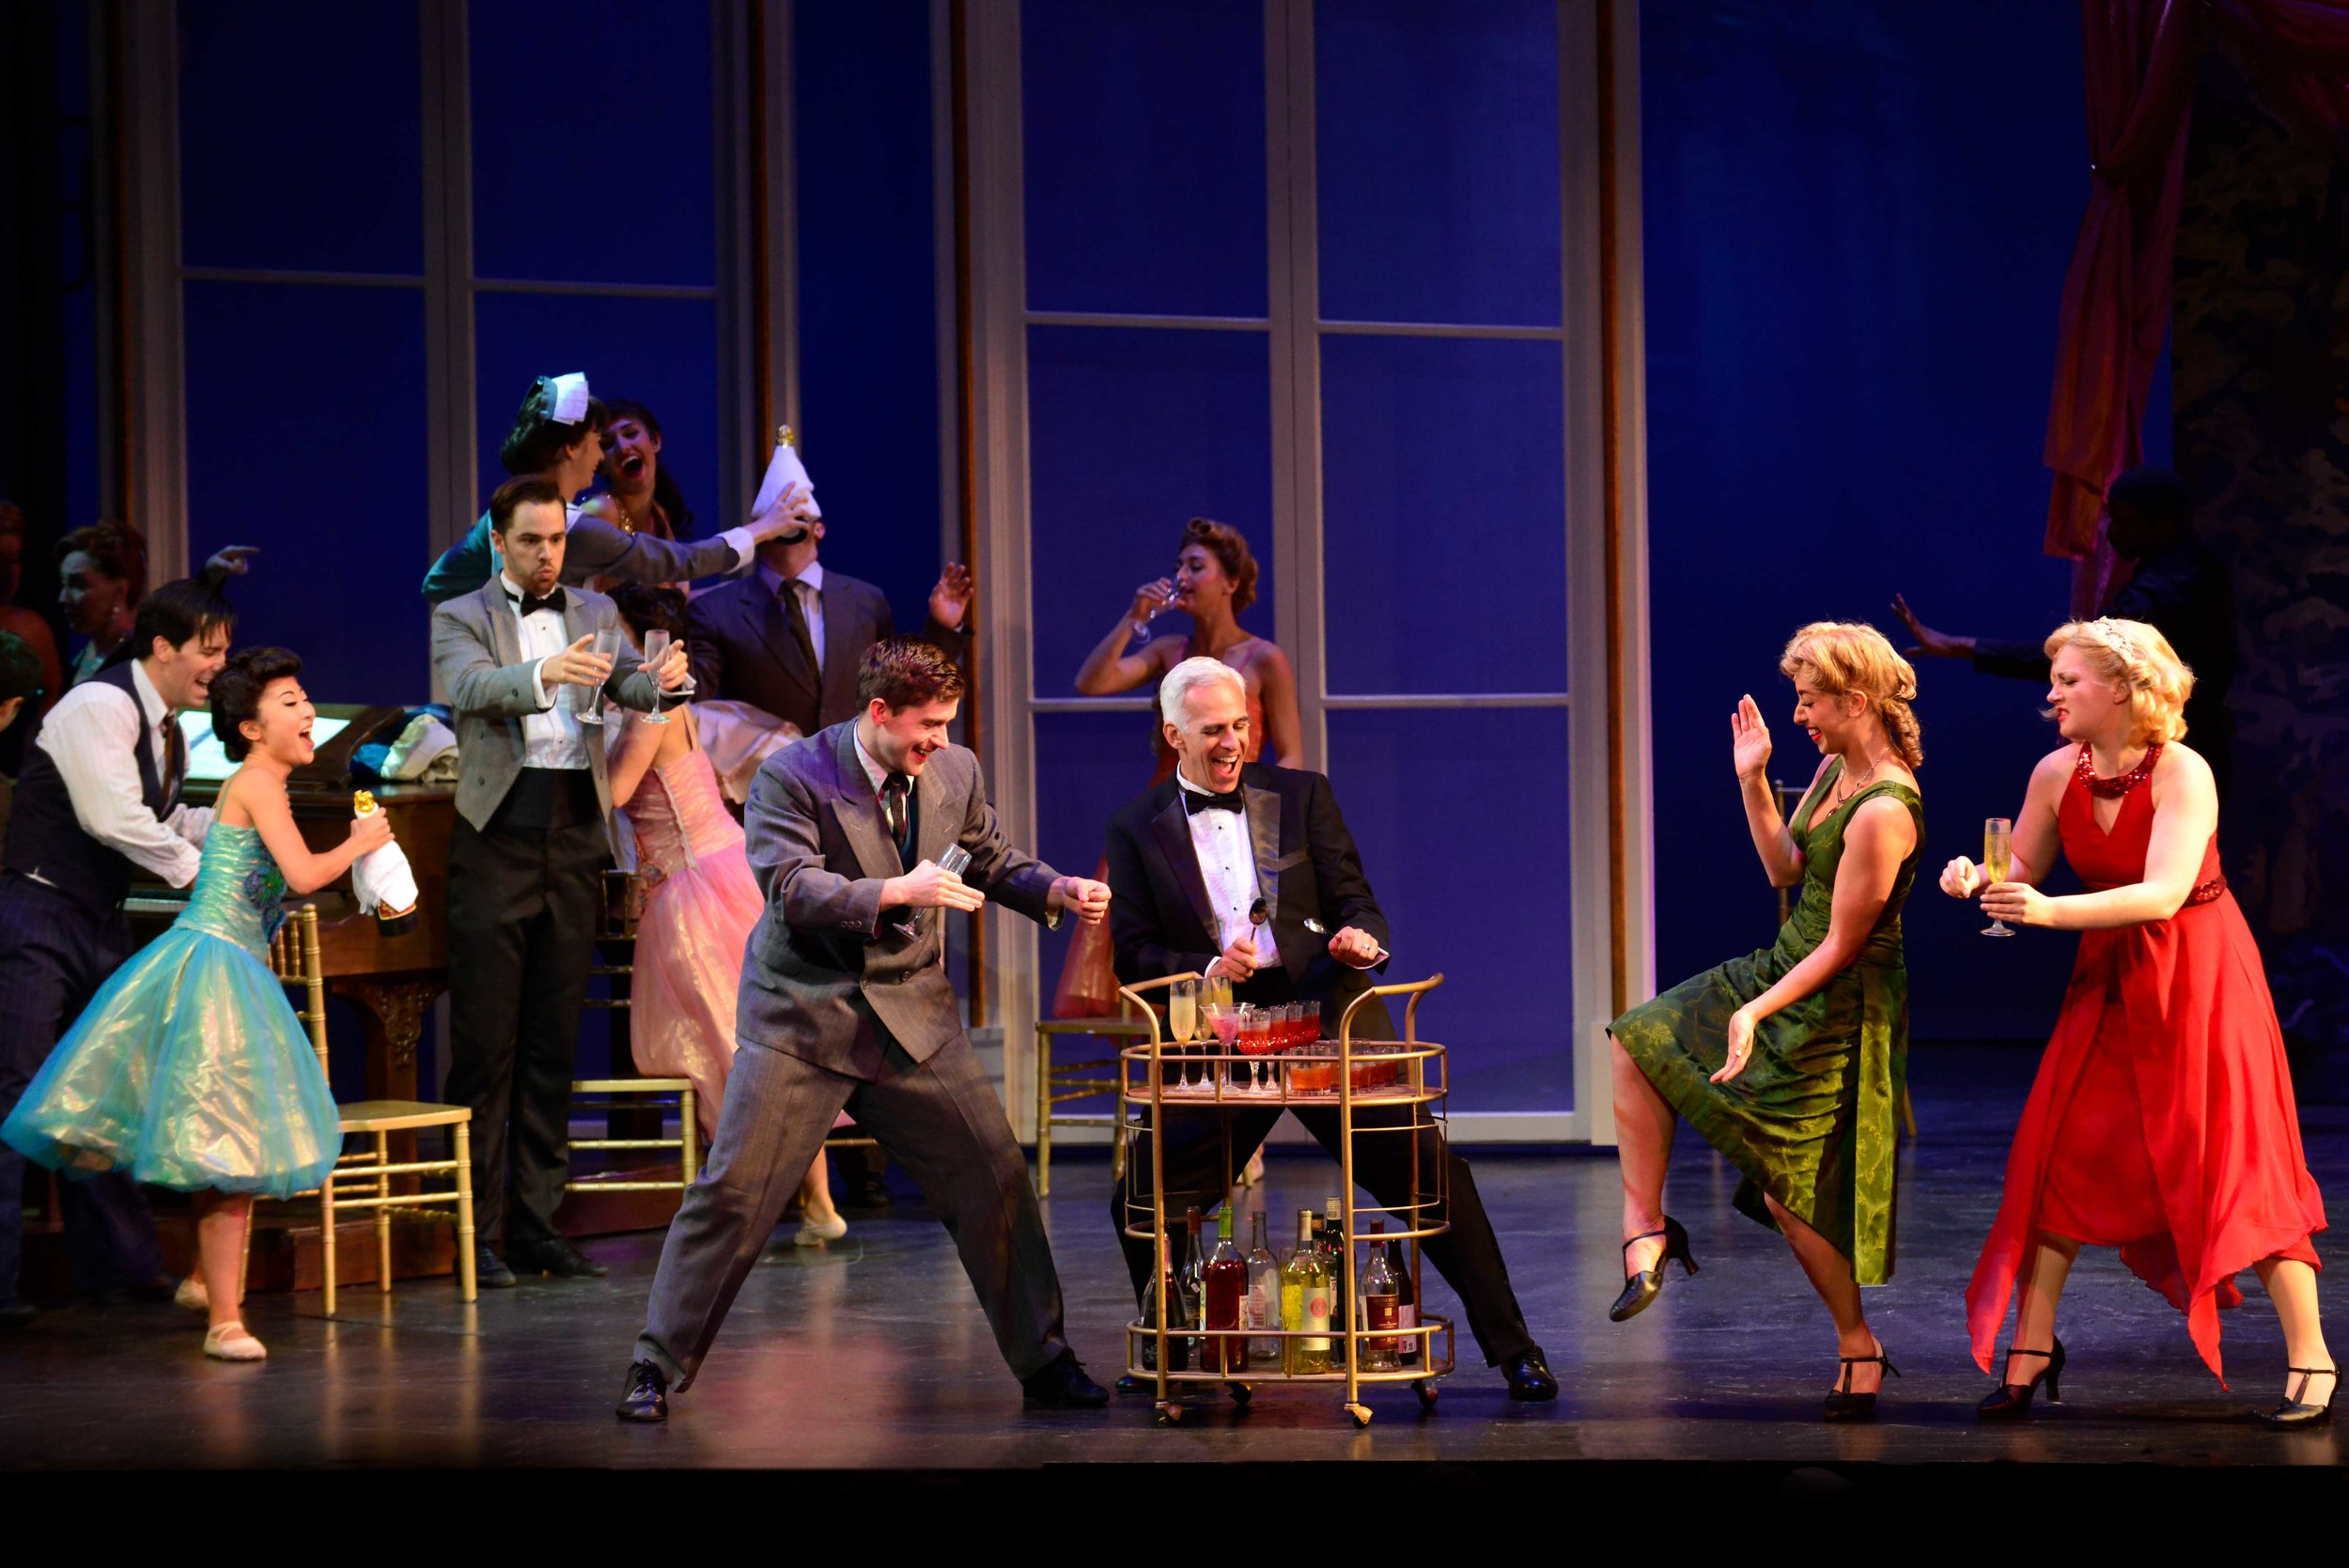 The 2018 production of An American in Paris. Photo by Gary Ng.